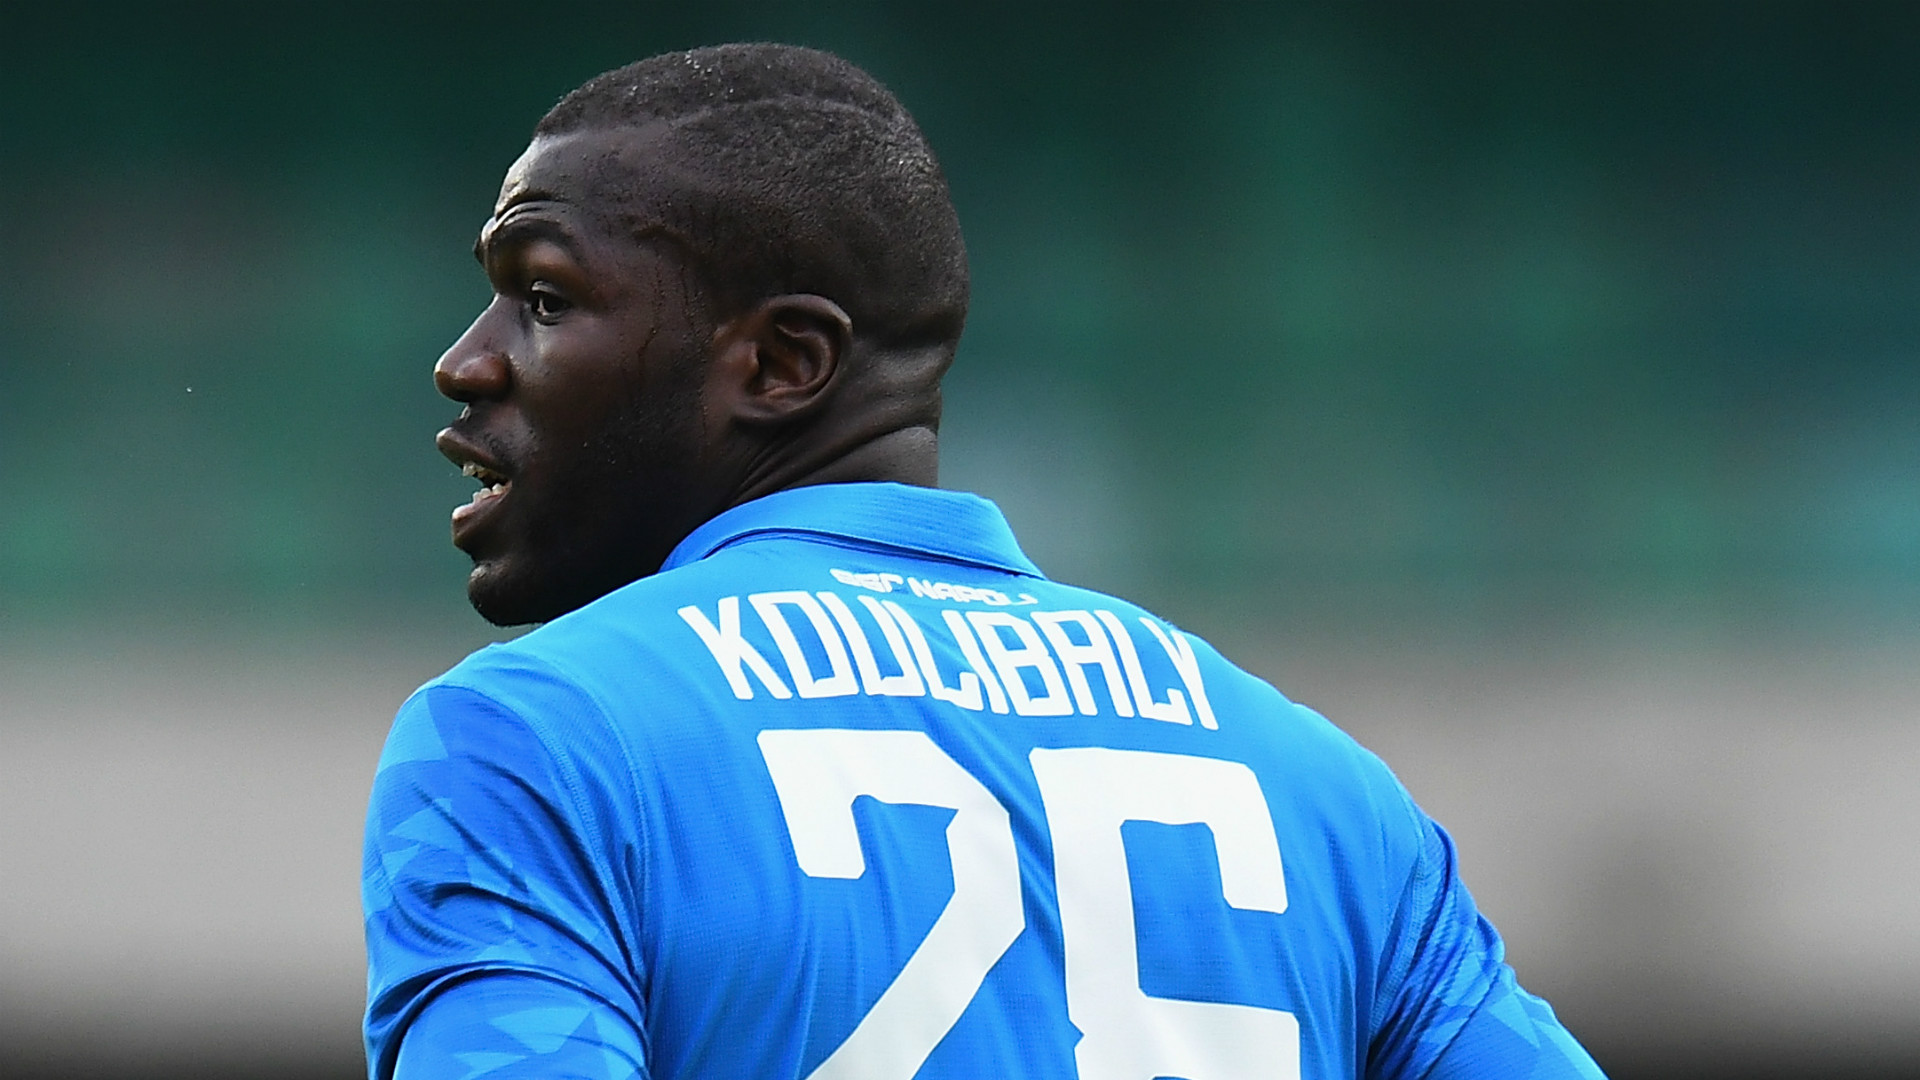 African All Stars Transfer News & Rumours: Manchester United's £96m bid for Koulibaly rejected